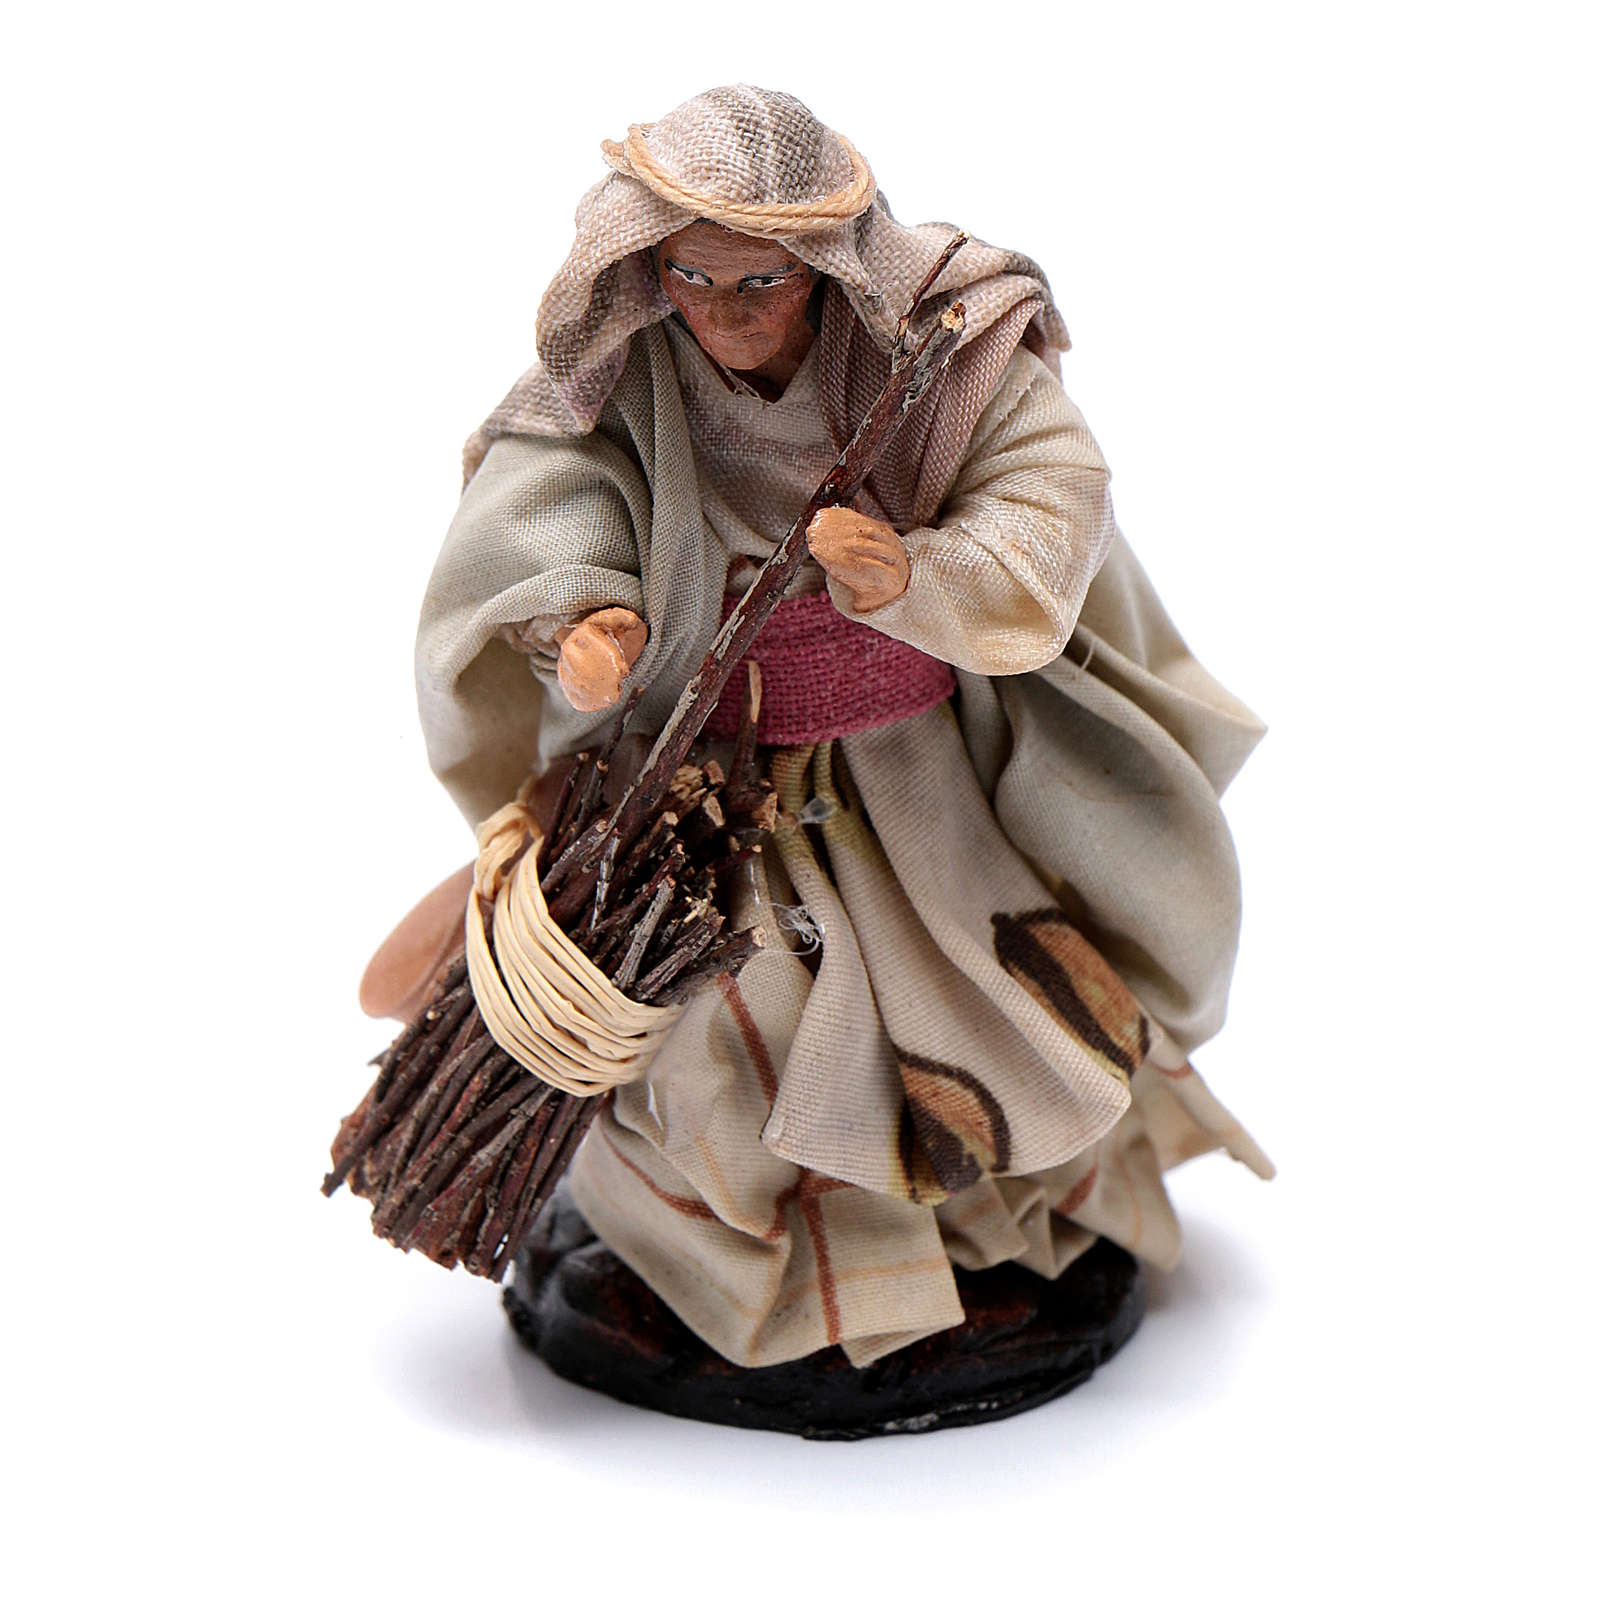 Neapolitan Nativity figurine, Old woman with broom 8cm 4